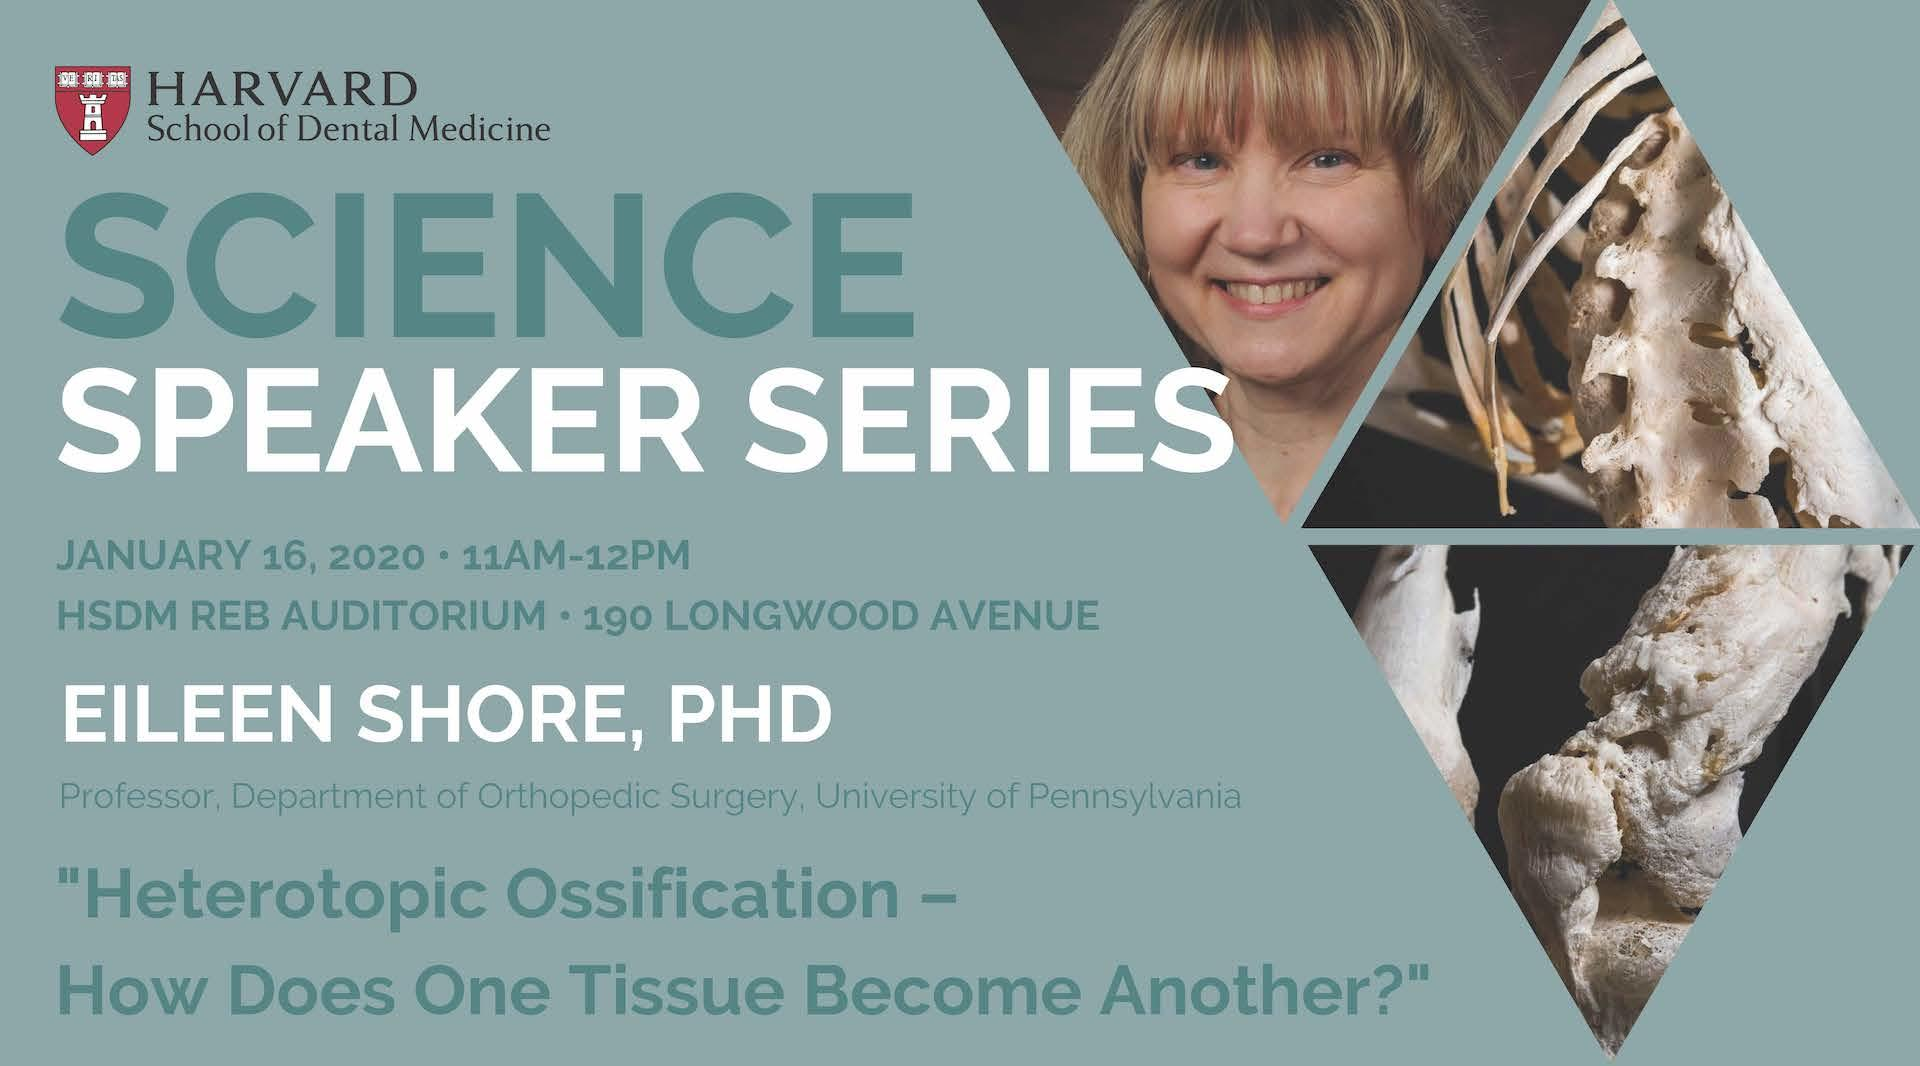 Science Speaker Series: Eileen Shore, PhD, event information